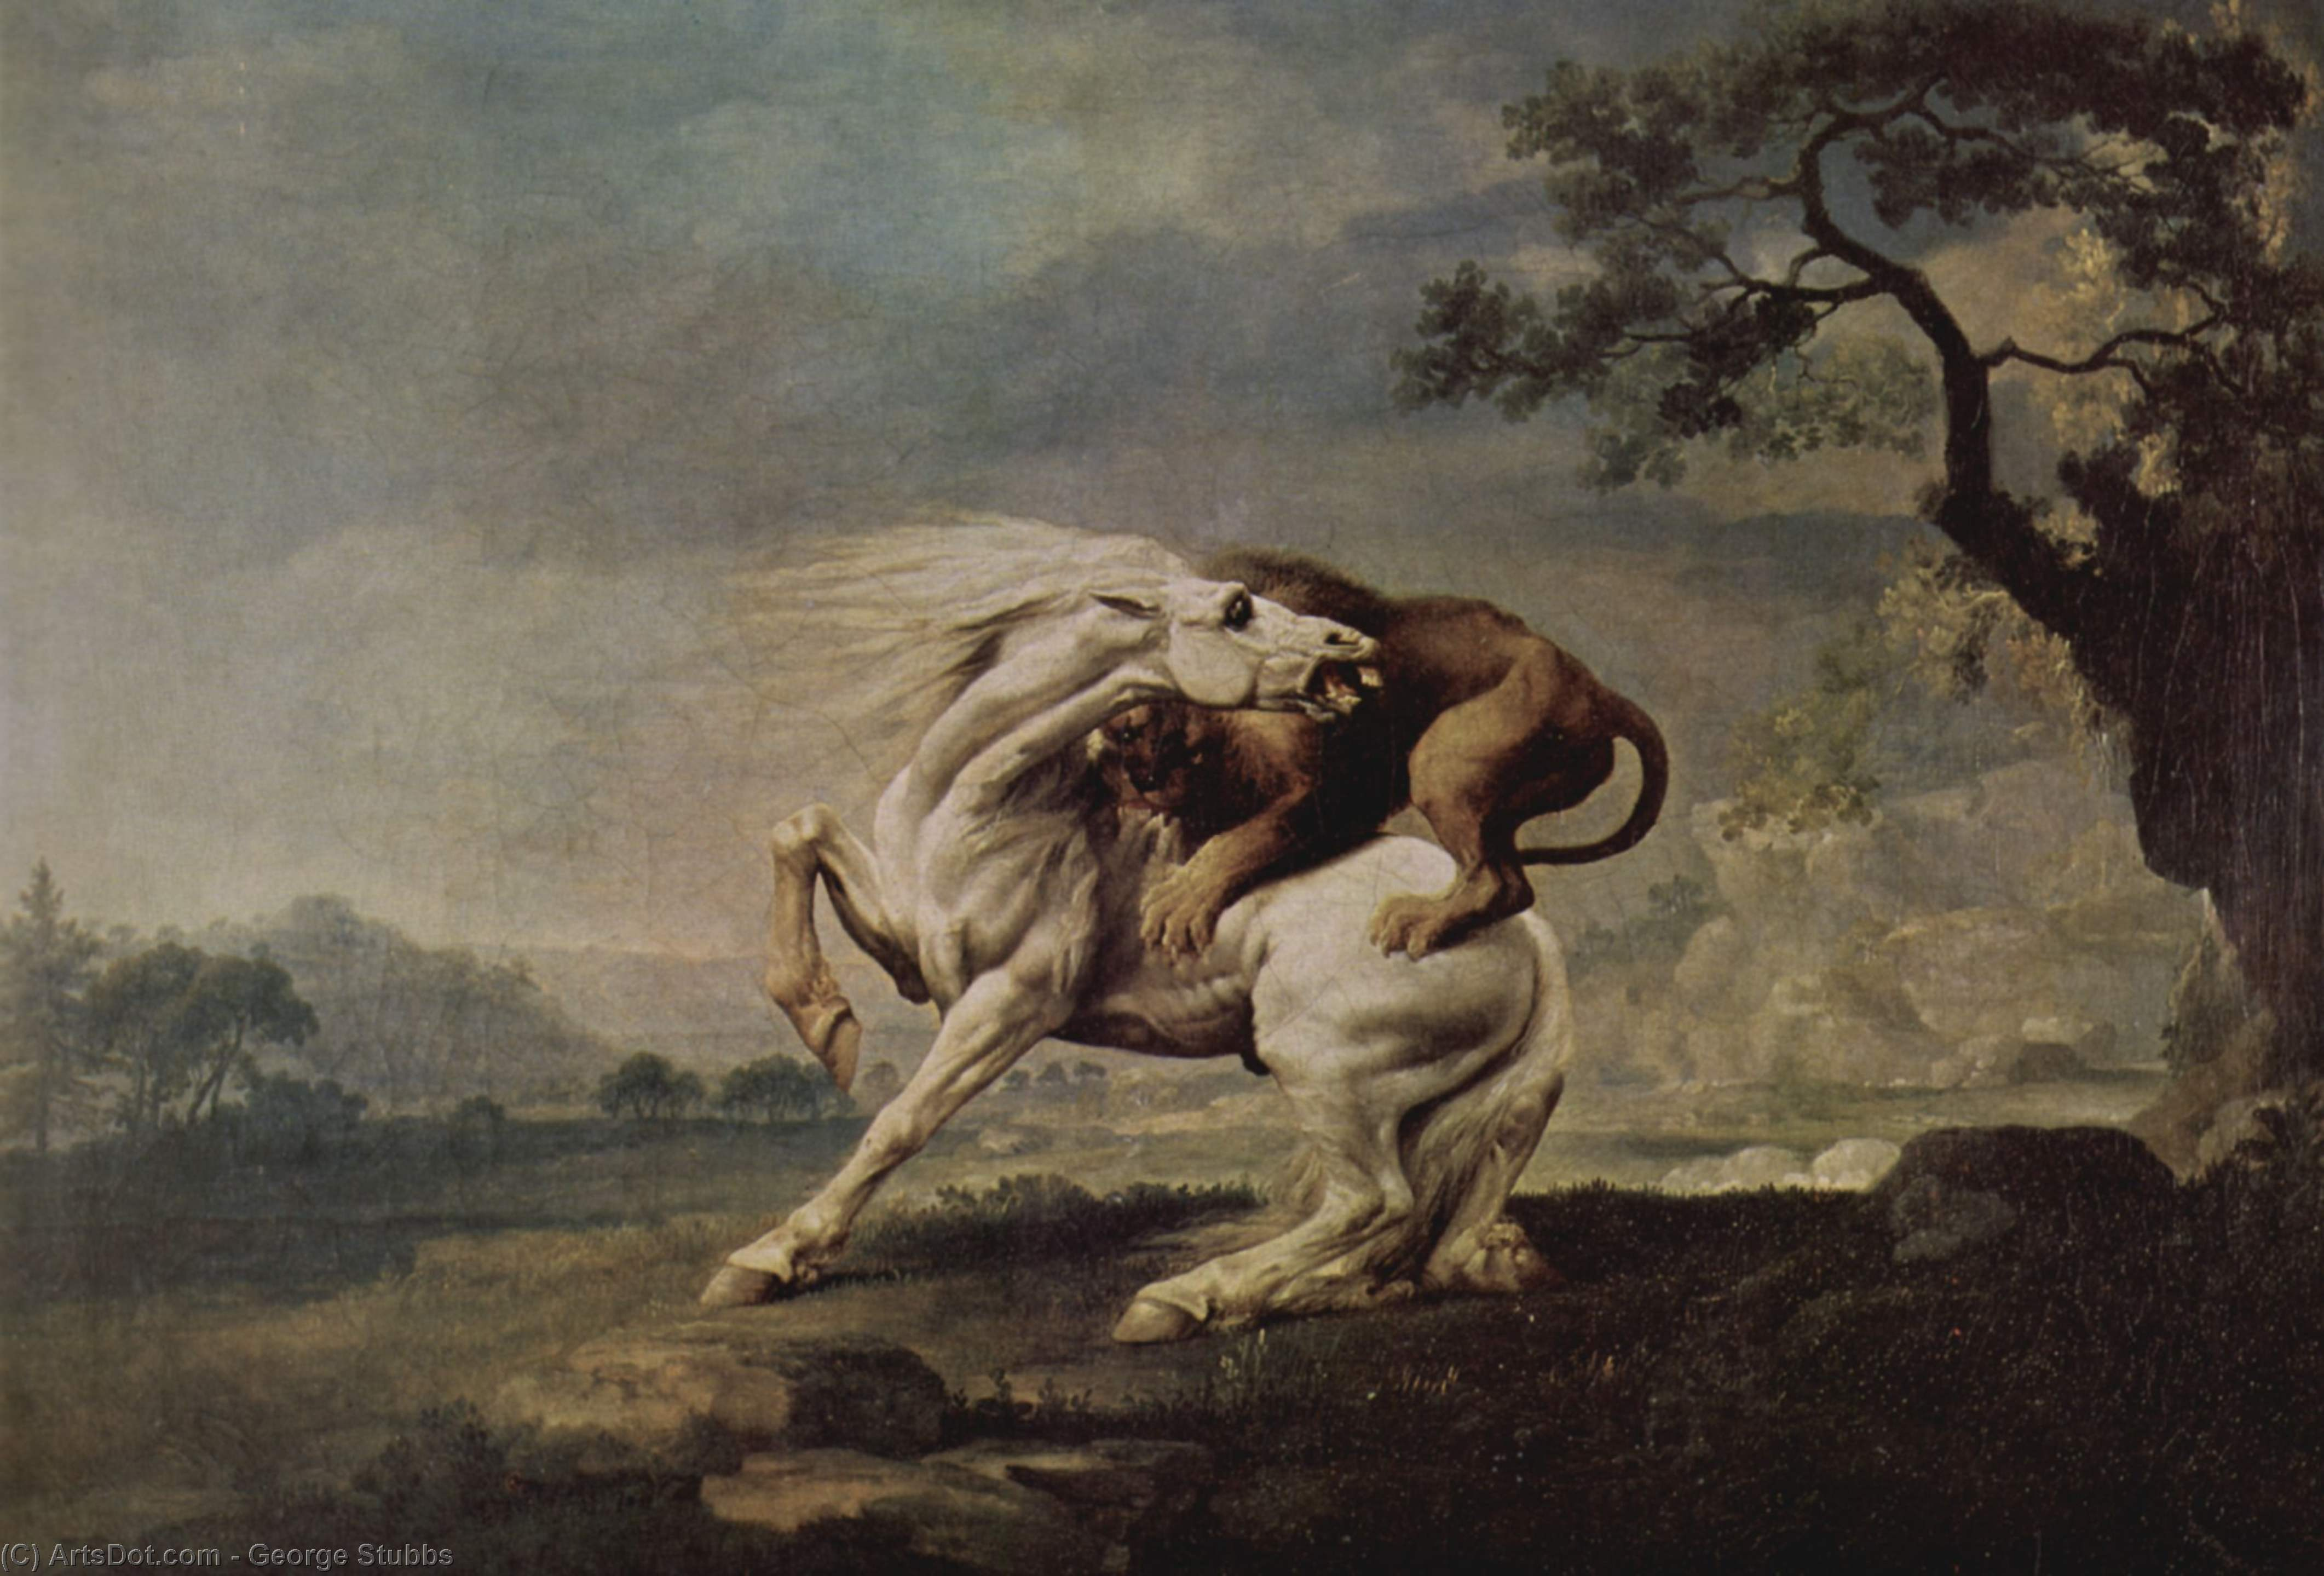 Wikioo.org - The Encyclopedia of Fine Arts - Painting, Artwork by George Stubbs - Lion Attacking a Horse